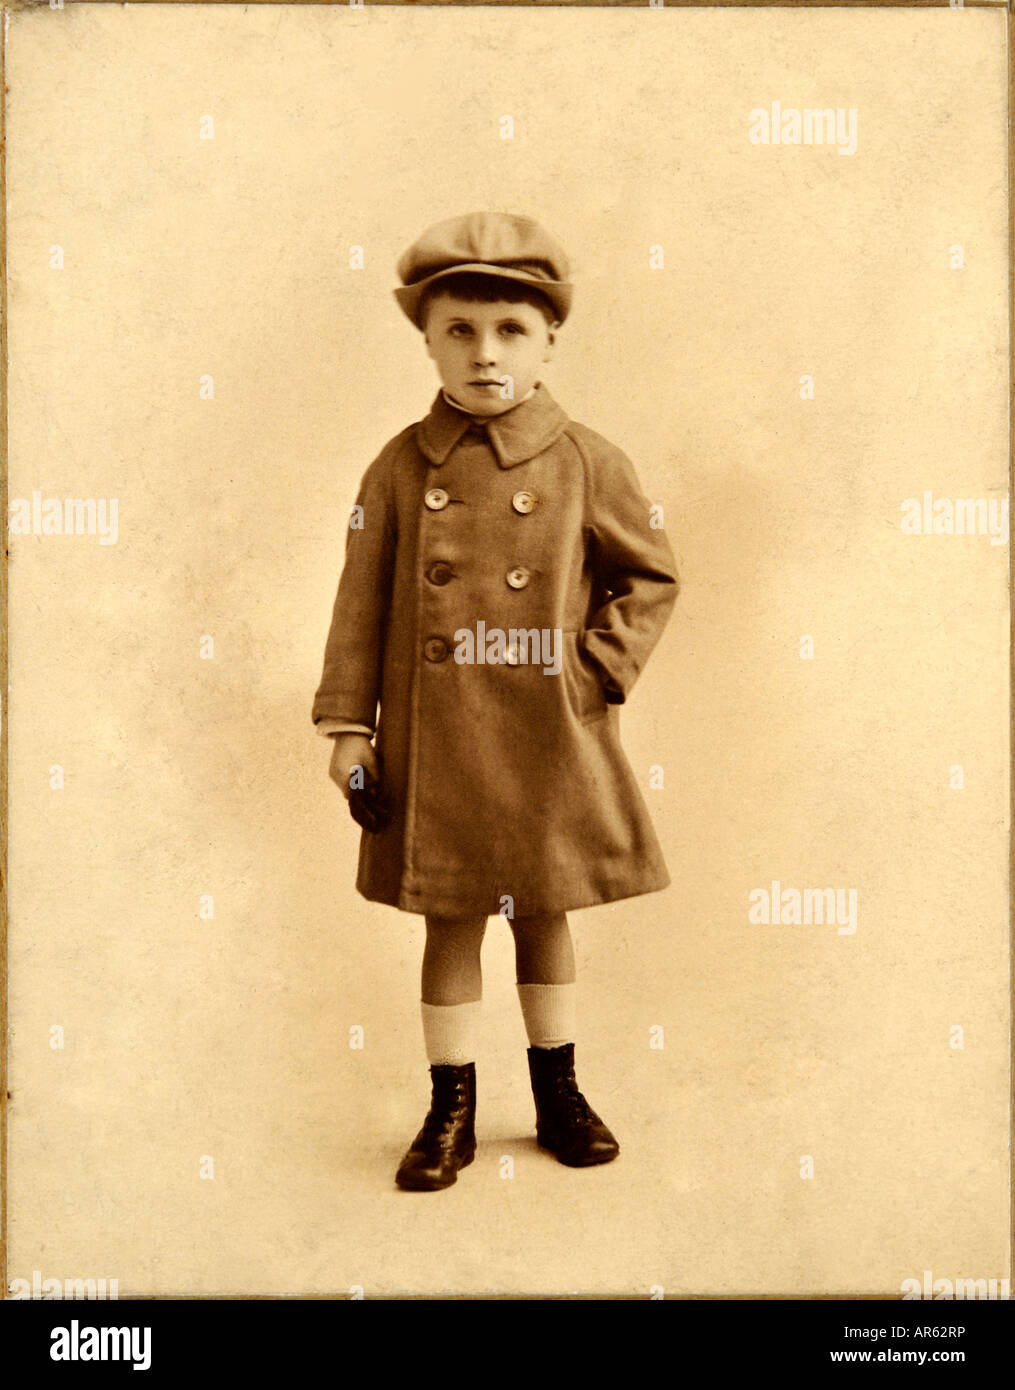 Edwardian Boy in old sepia photograph by anonymous photographer 1900s - Stock Image